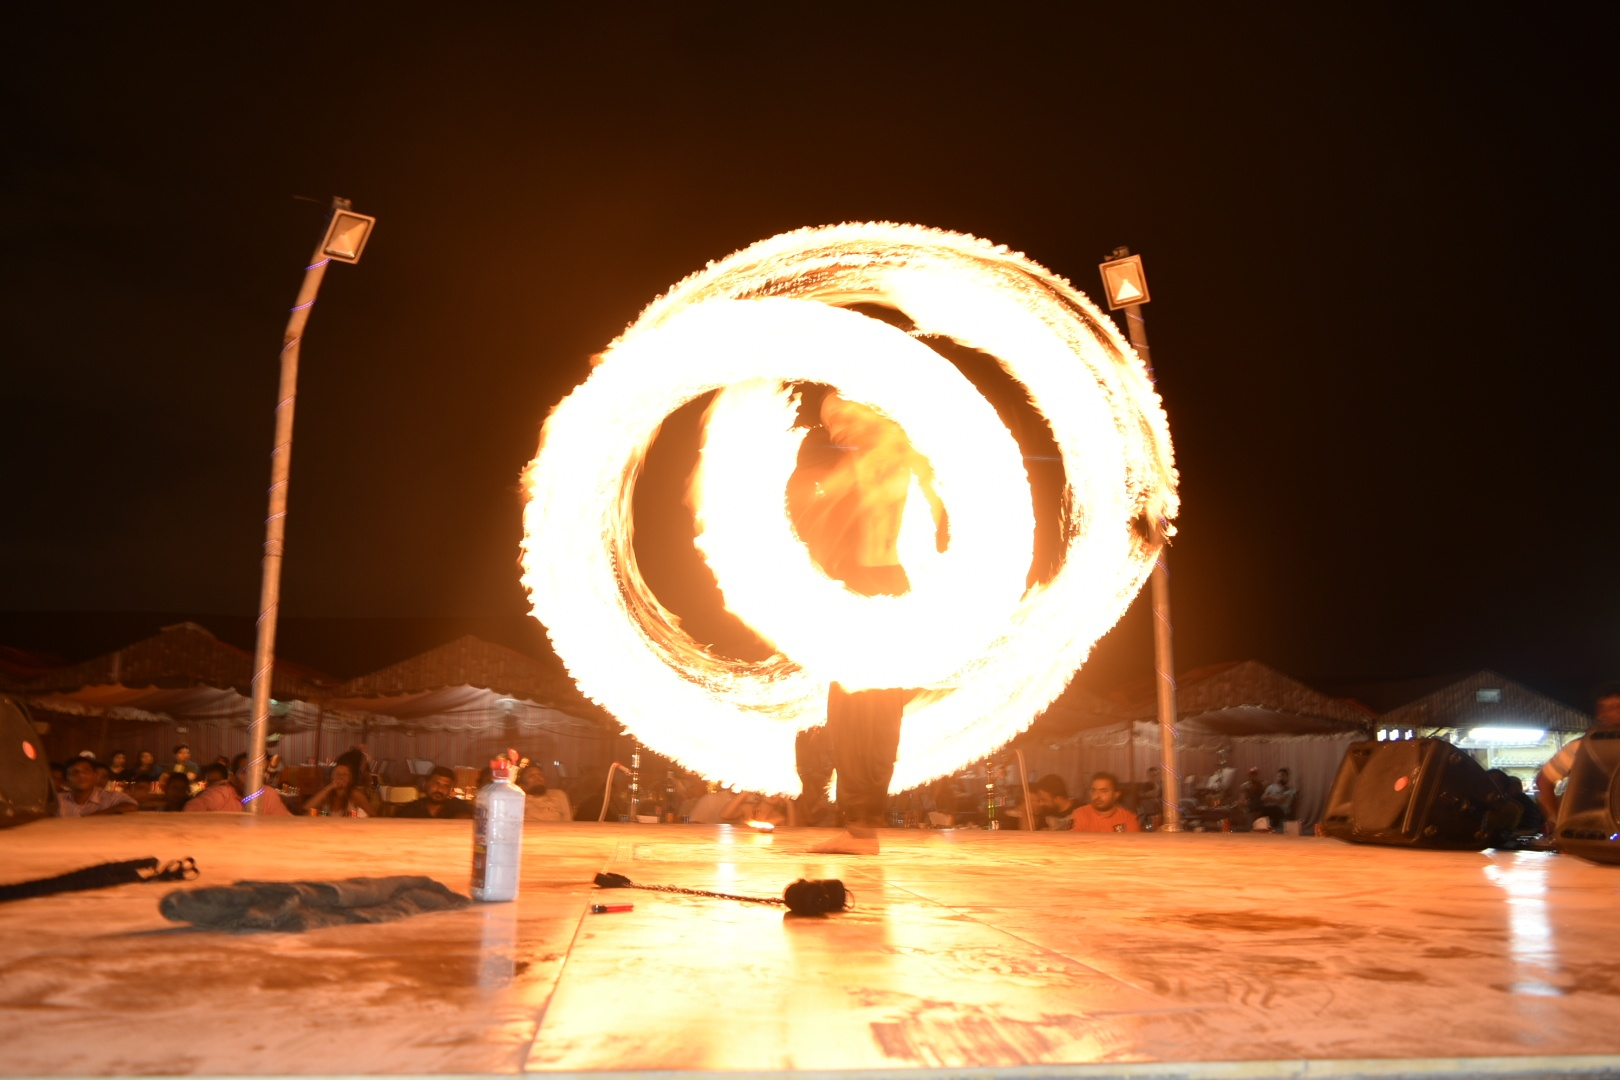 fire show by Rohit Vyas